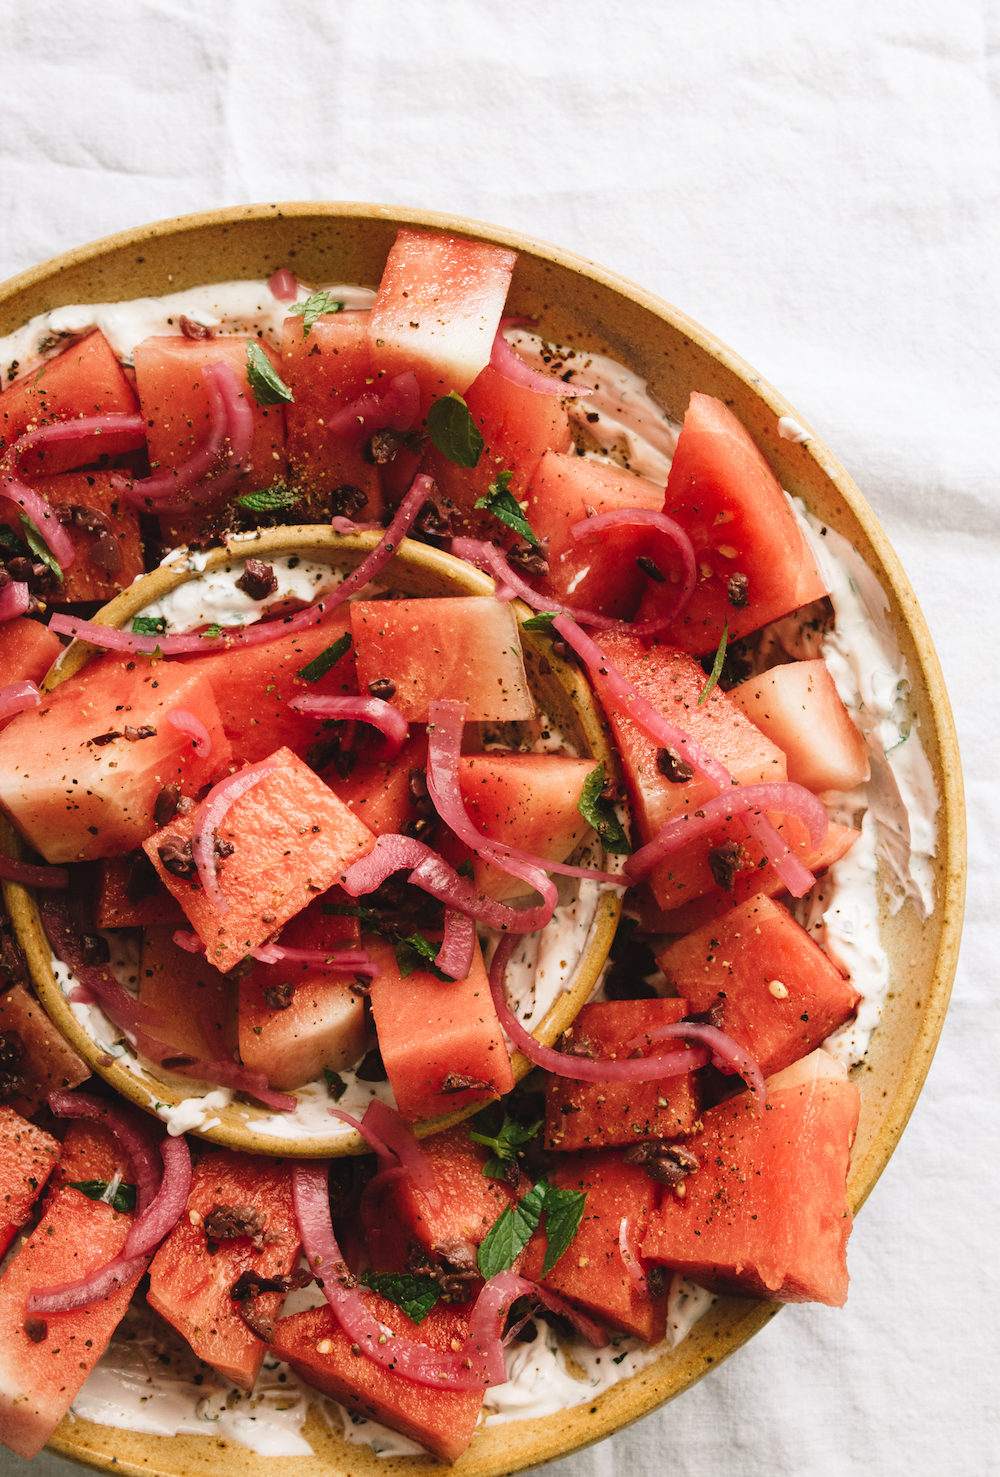 Watermelon Salad with Mint Yogurt & Pickled Red Onions